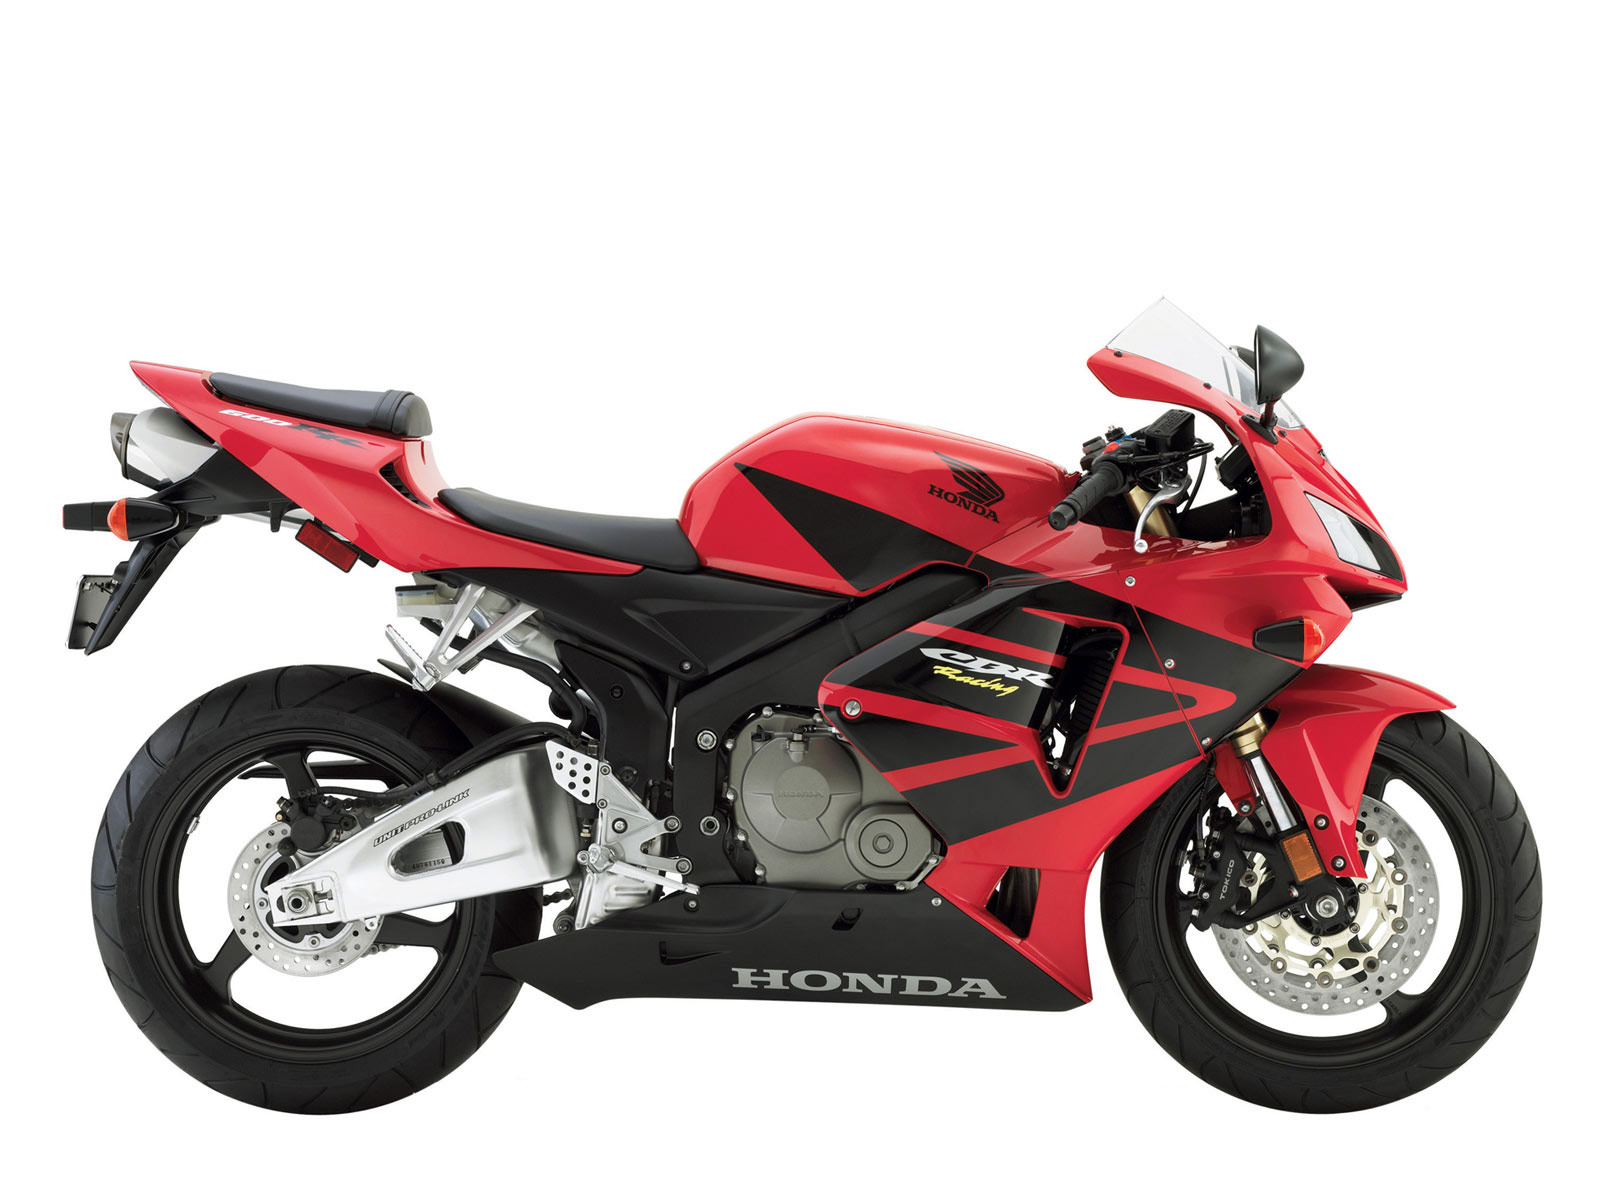 hight resolution of gambar honda cbr 600 rr 2004 insurance info specs need wiring diagram of 2004 cbr 600 f4i 2004 honda cbr 600 f 4 i i have an 06 f4i myself